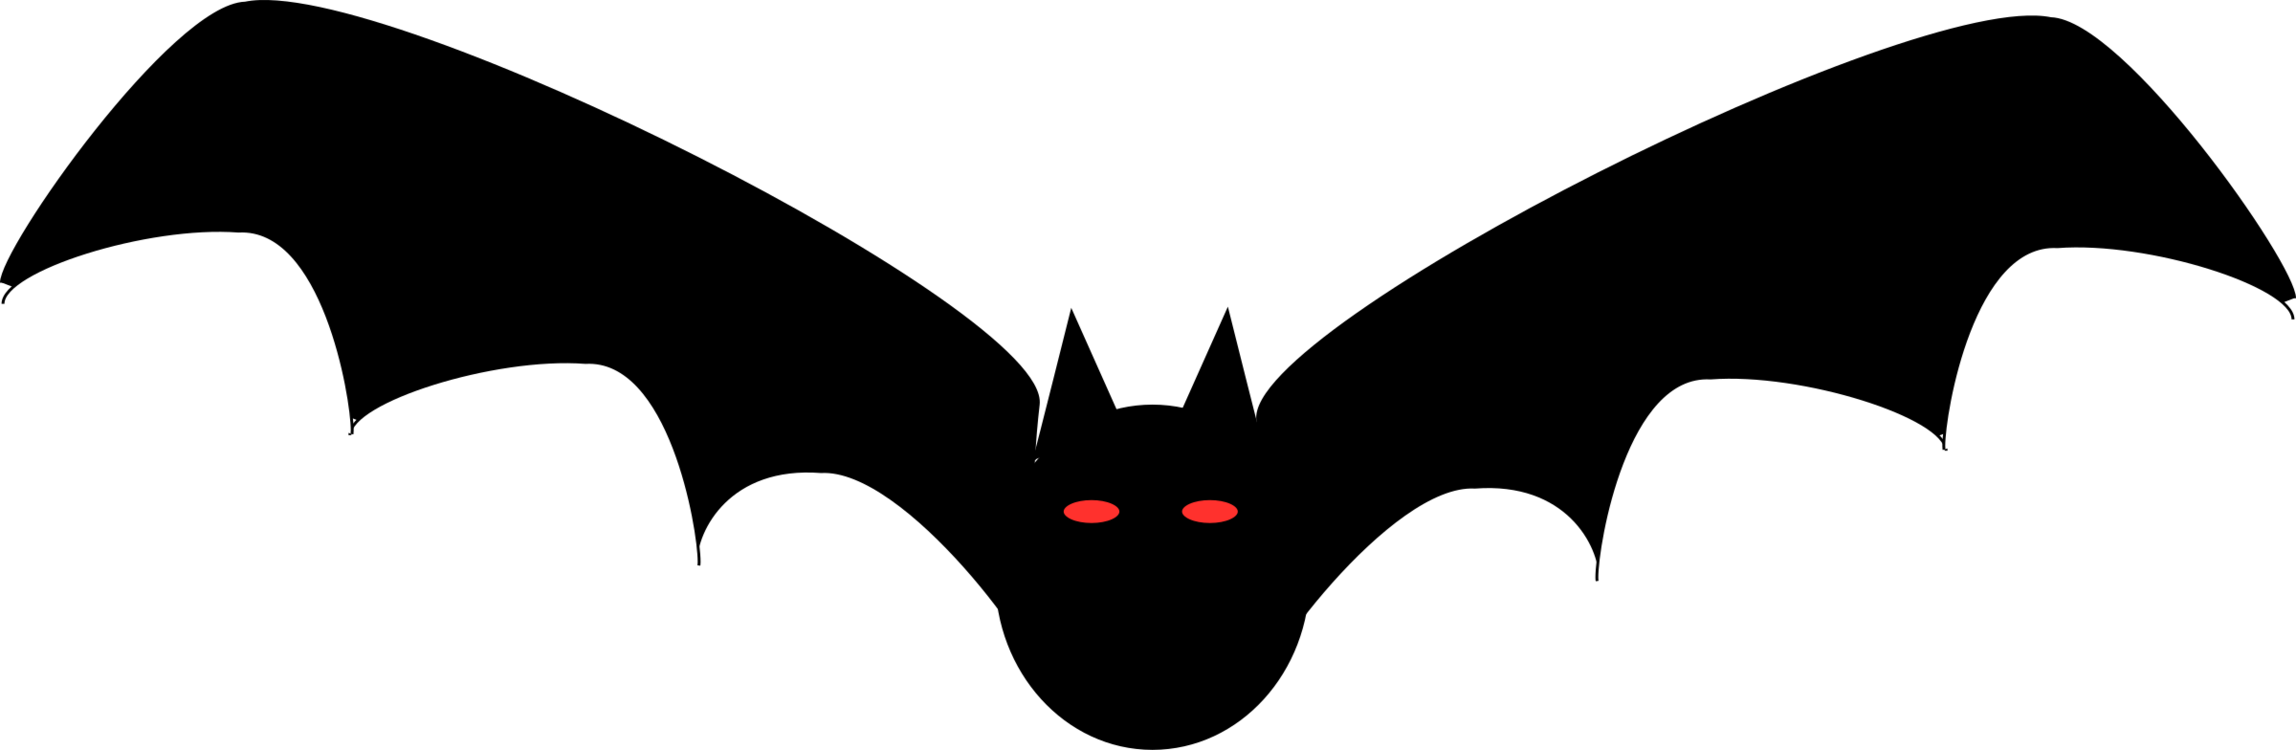 Halloween bats png. Download drawing free commercial